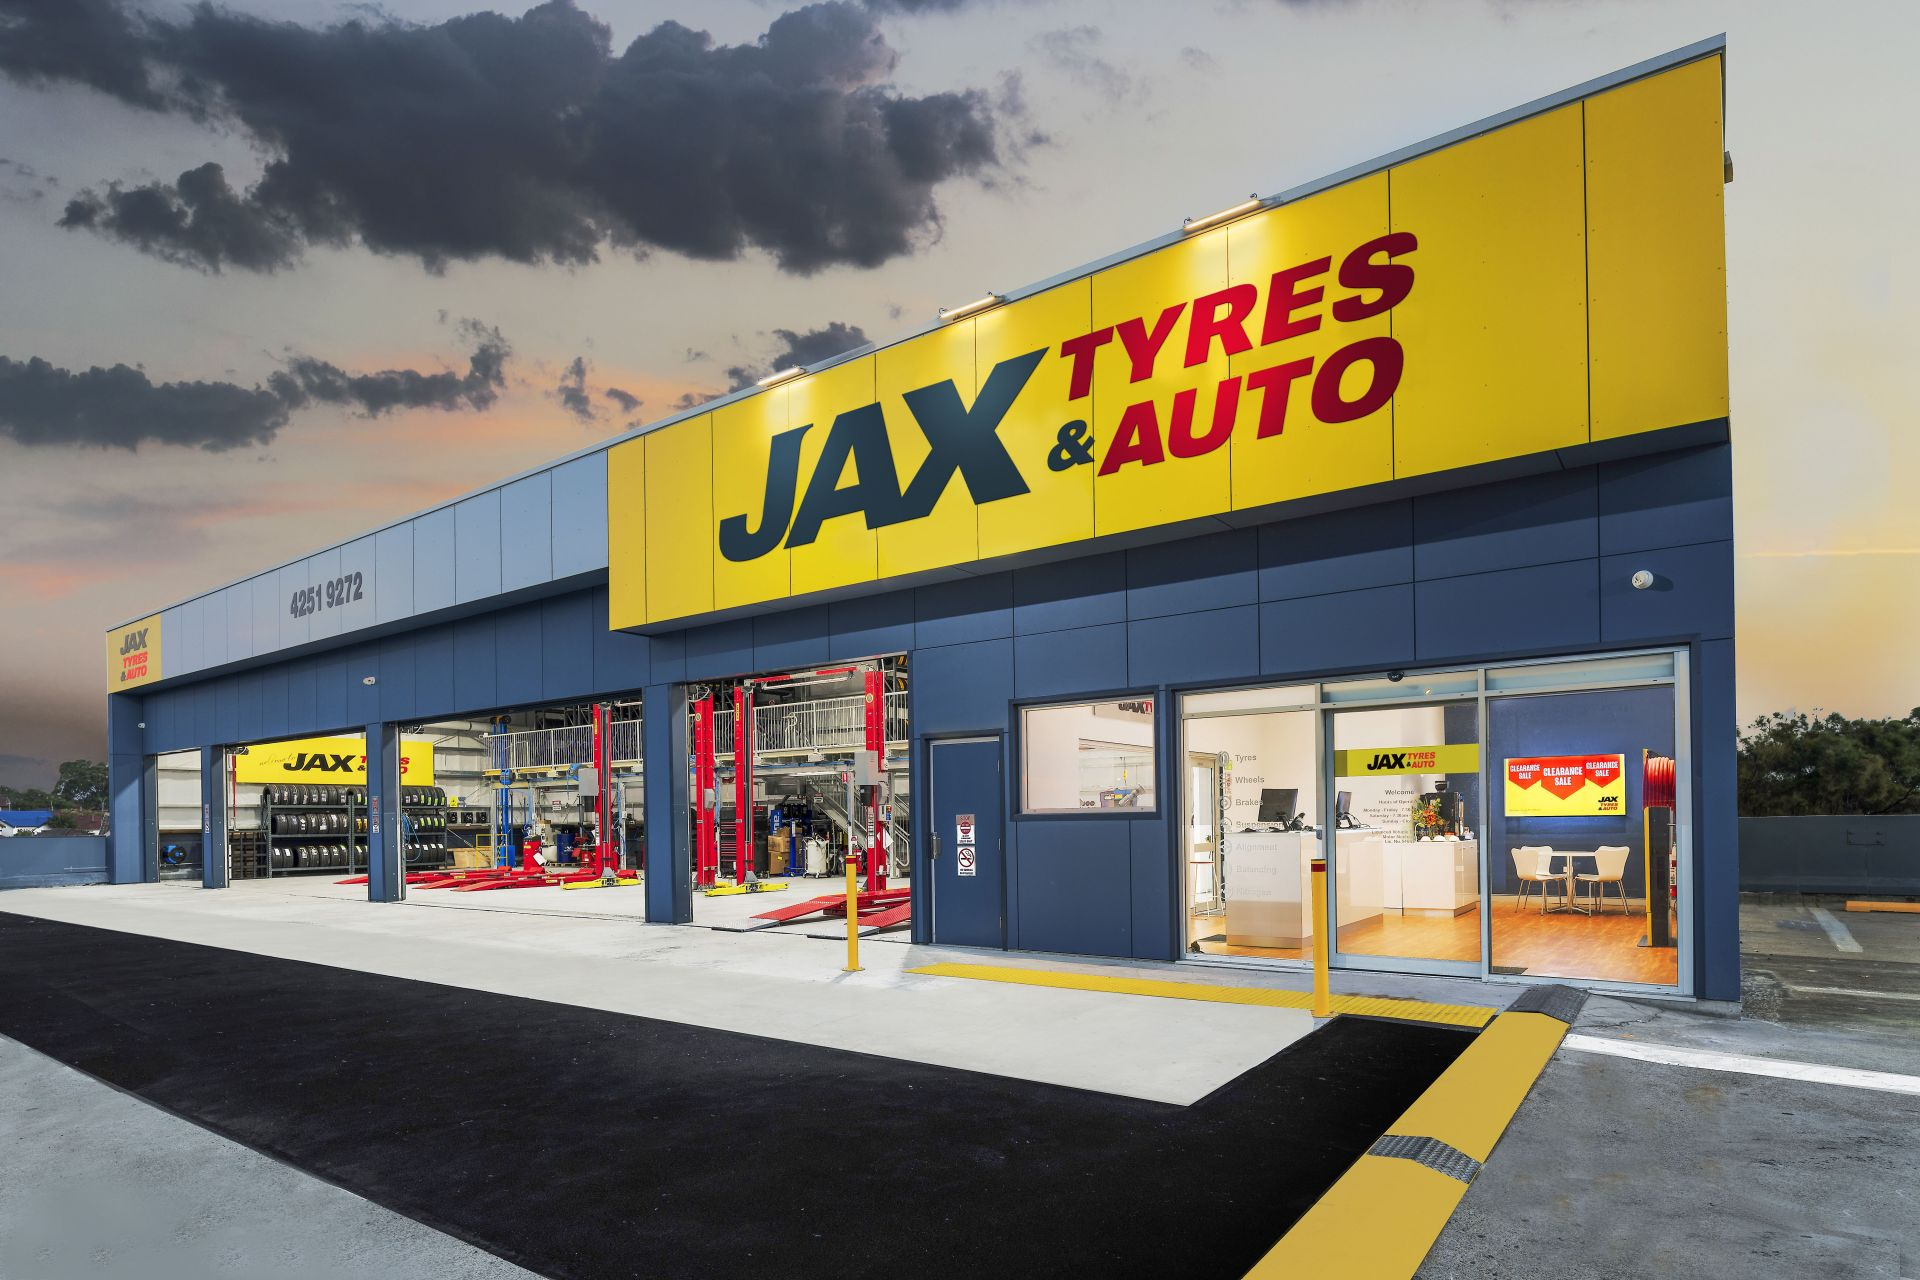 JAX Tyres & Auto extends video vehicle checks   Inside Franchise Business Executive